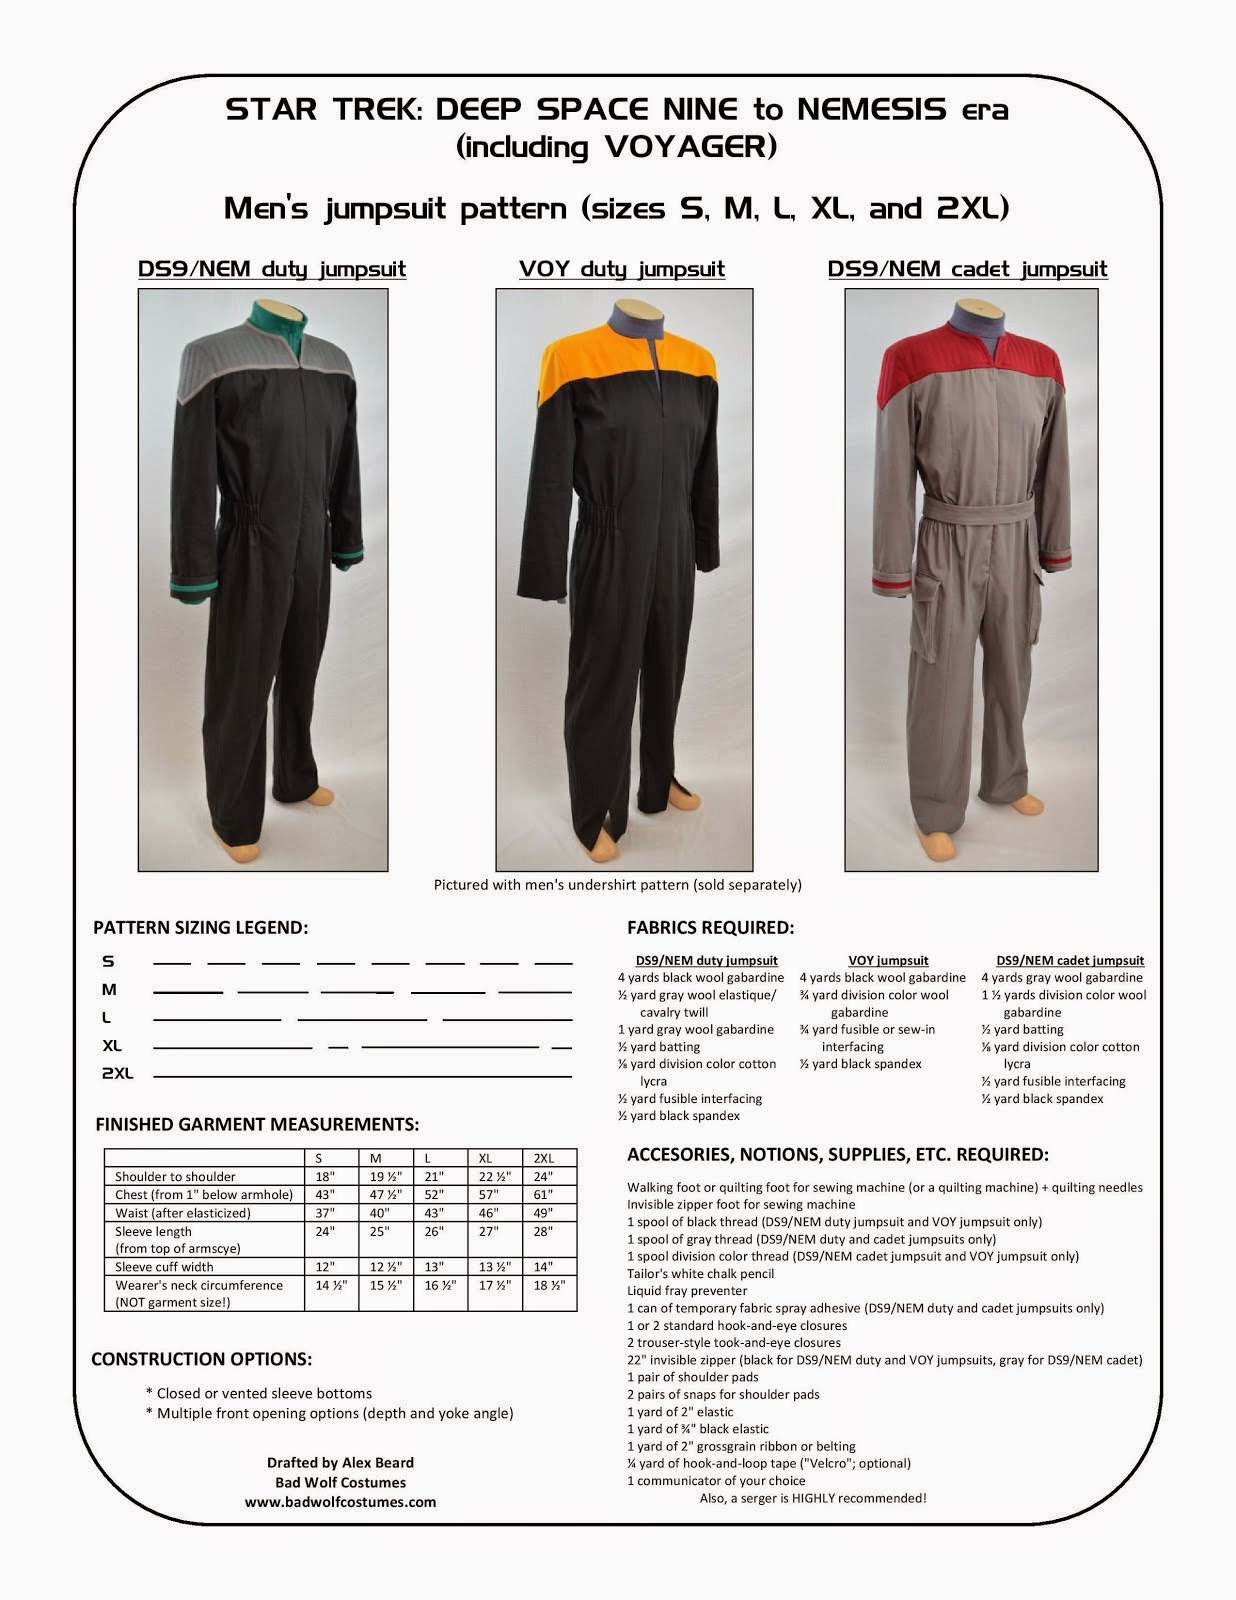 Star Trek: DS9/NEM and VOY Men's Jumpsuit Sewing Pattern